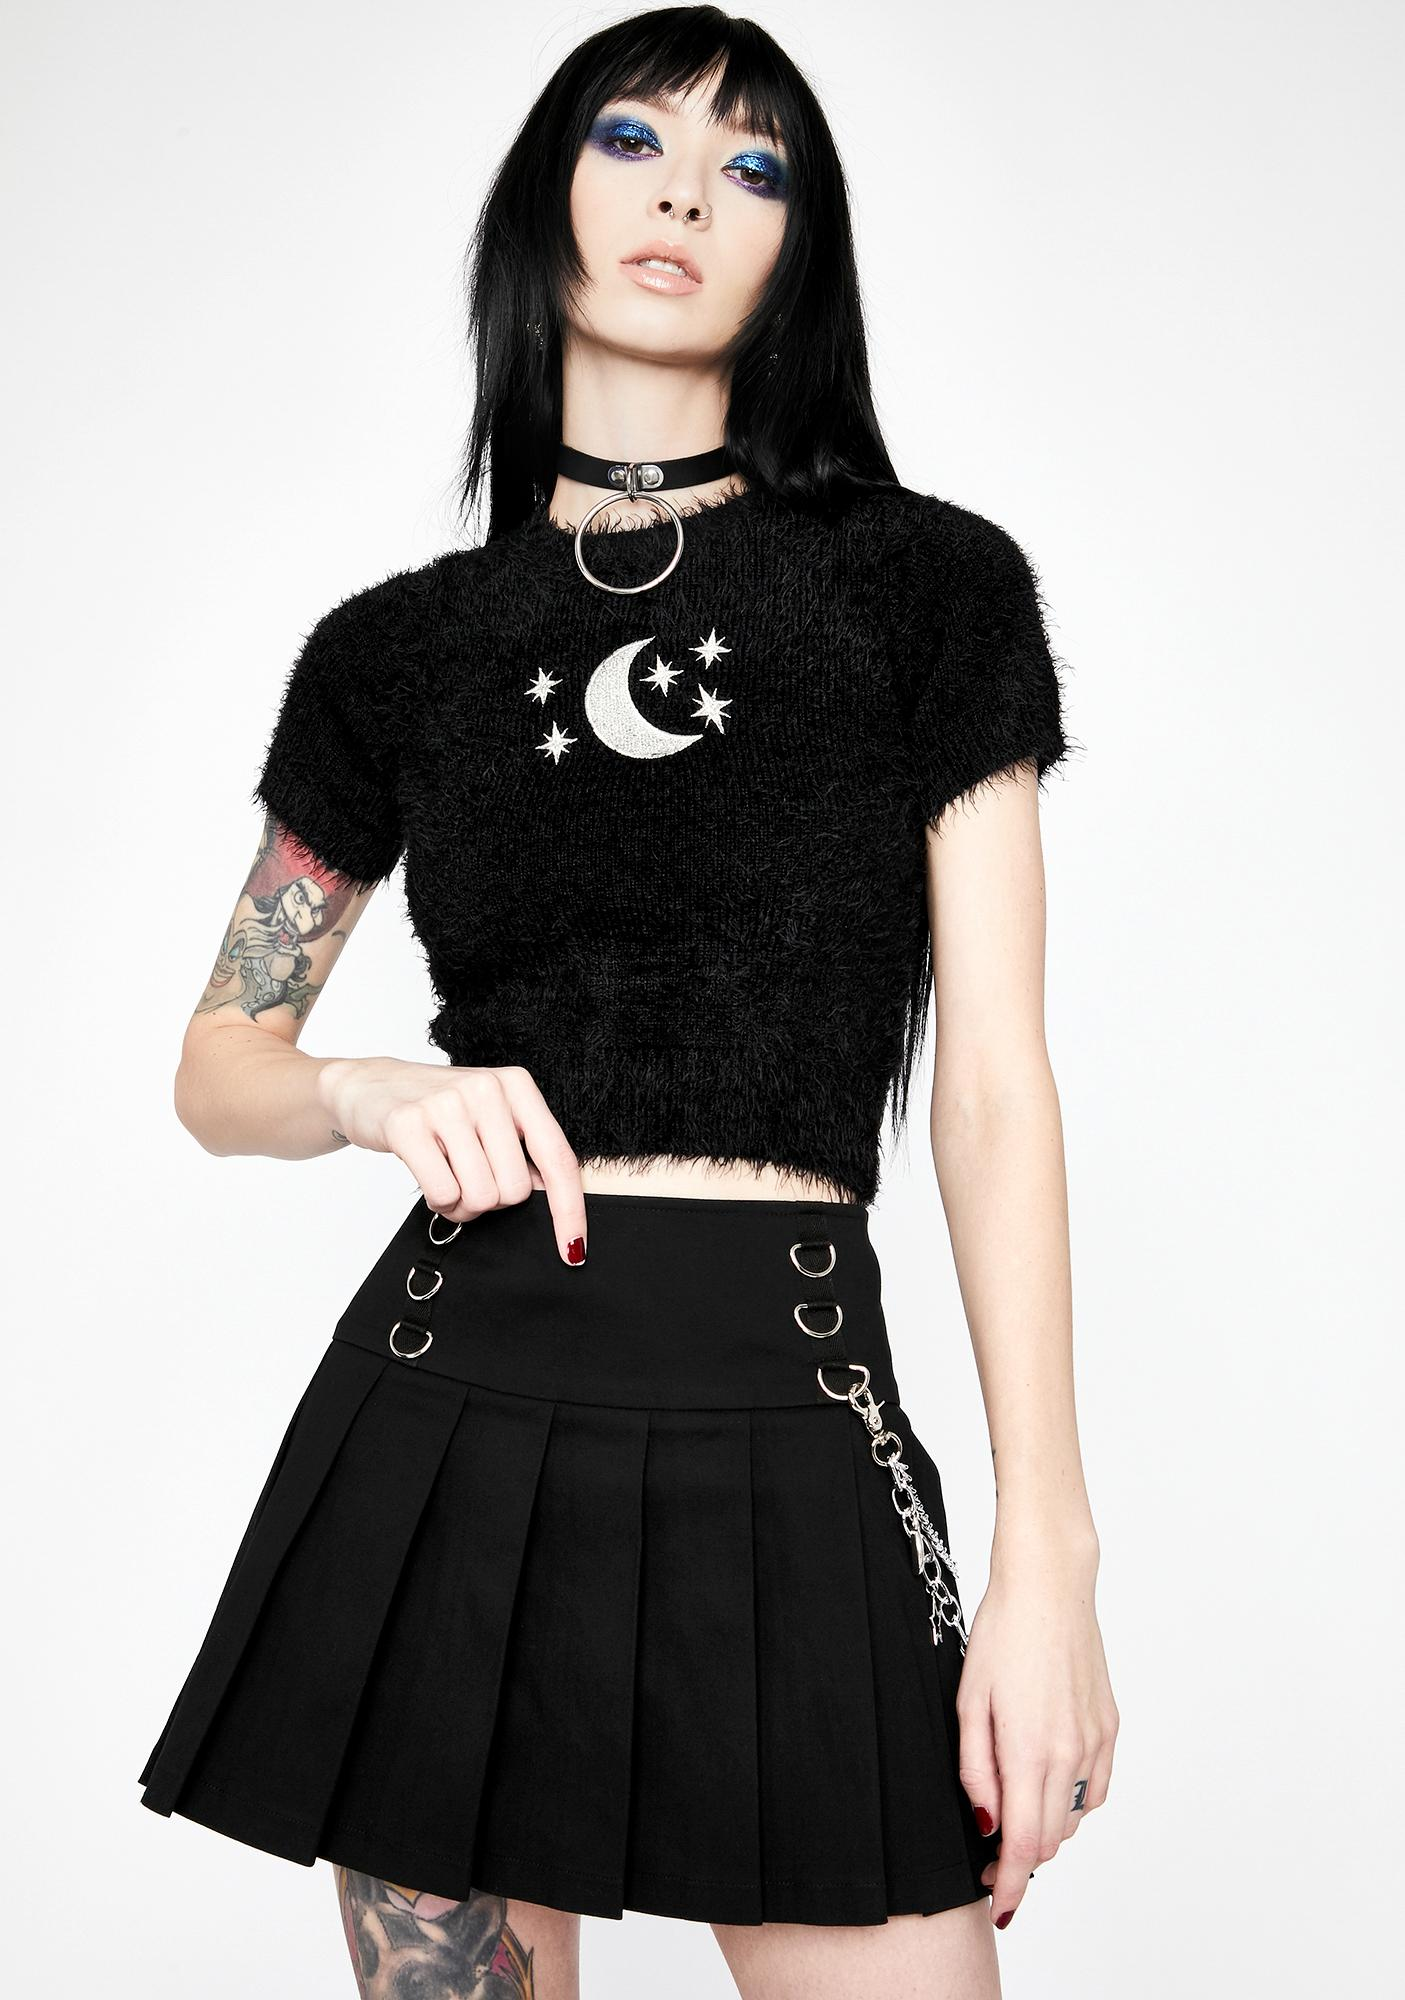 HOROSCOPEZ Astral Projection Pleated Skirt